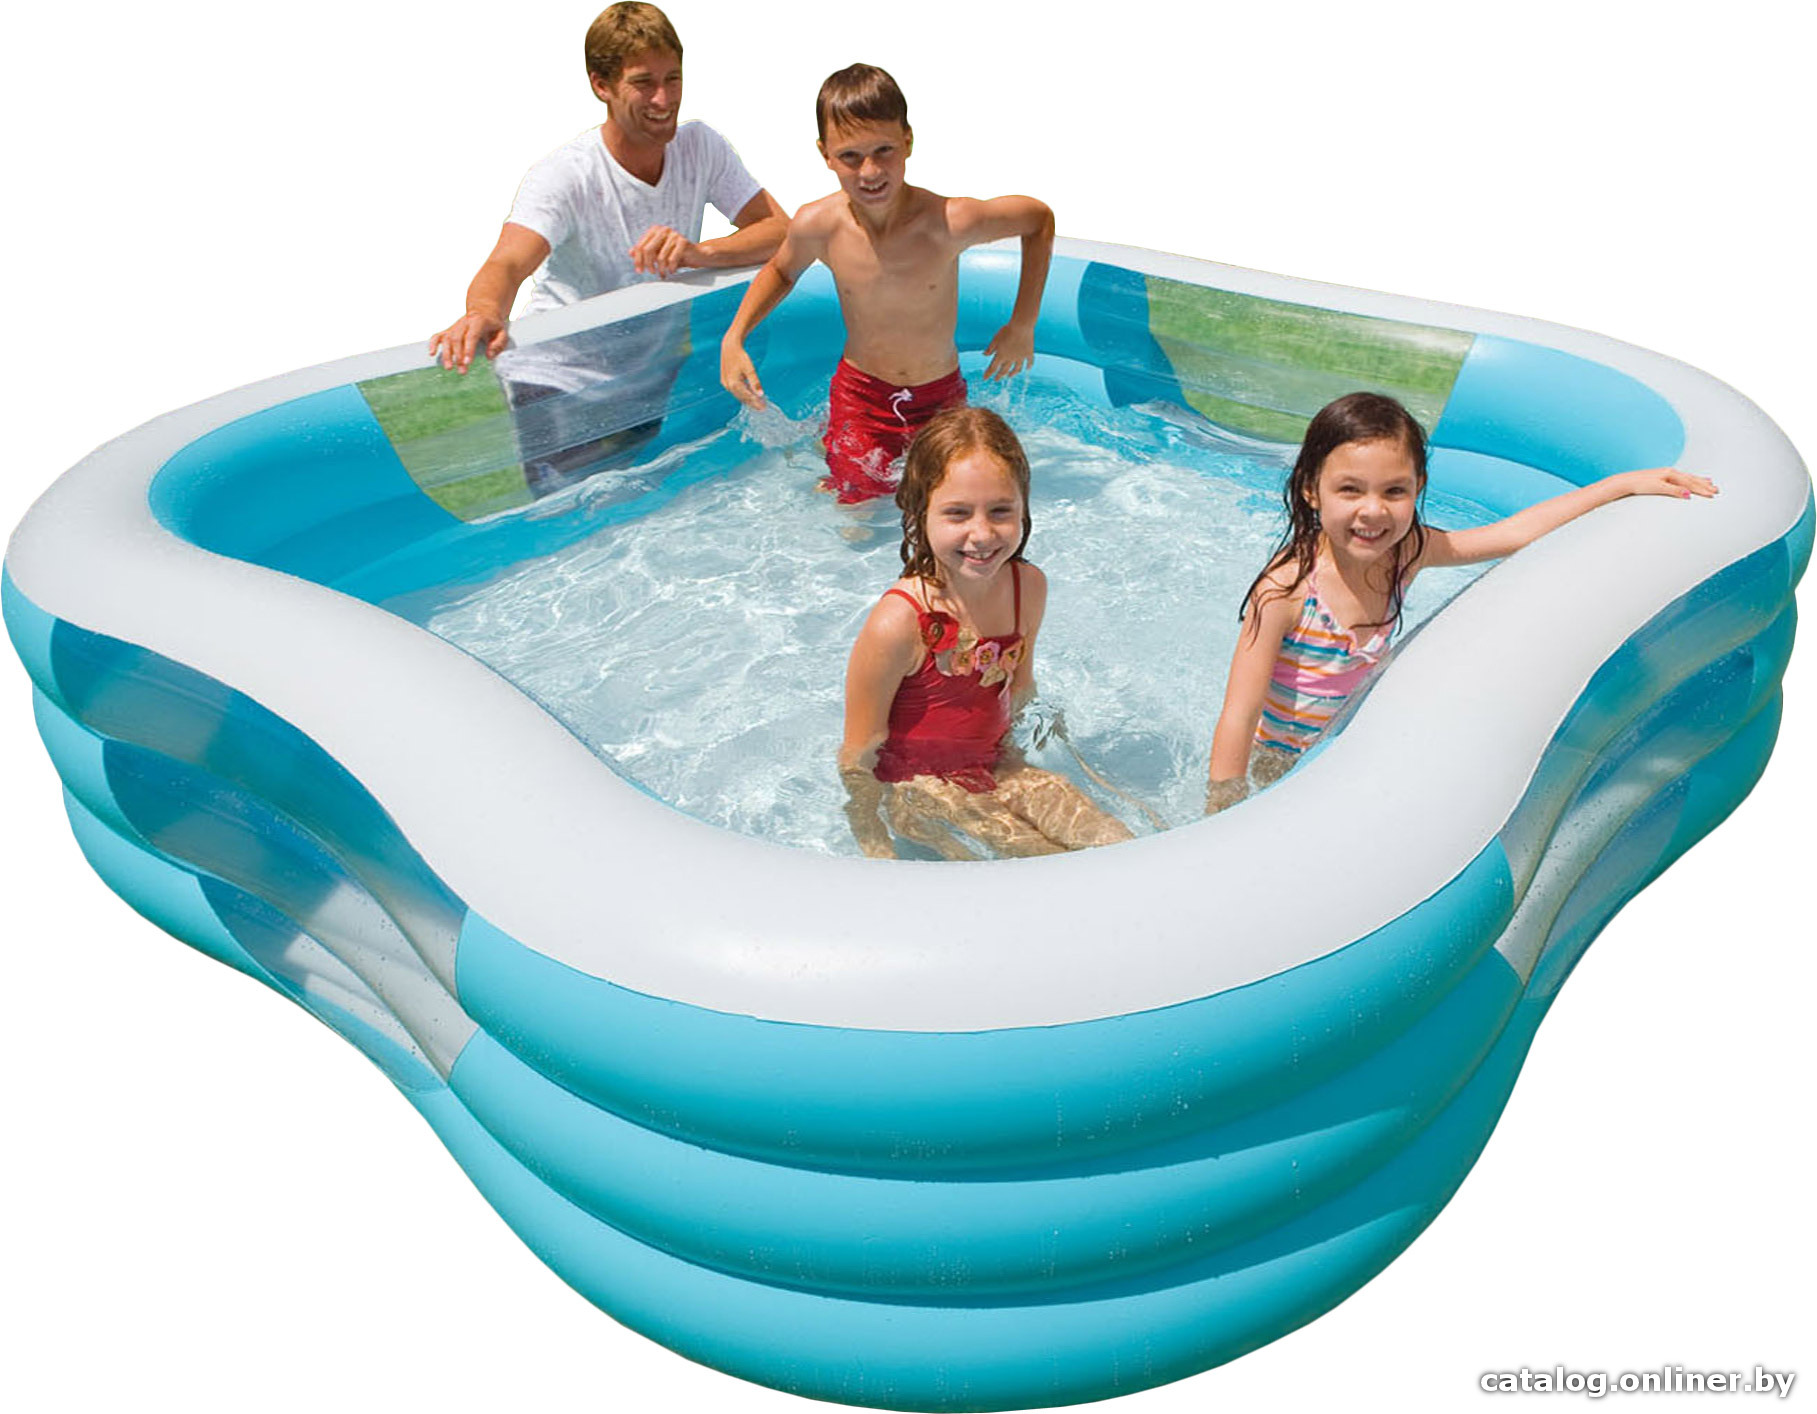 Intex inflatable swimming pool 90 in pakistan hitshop Intex inflatable swimming pool